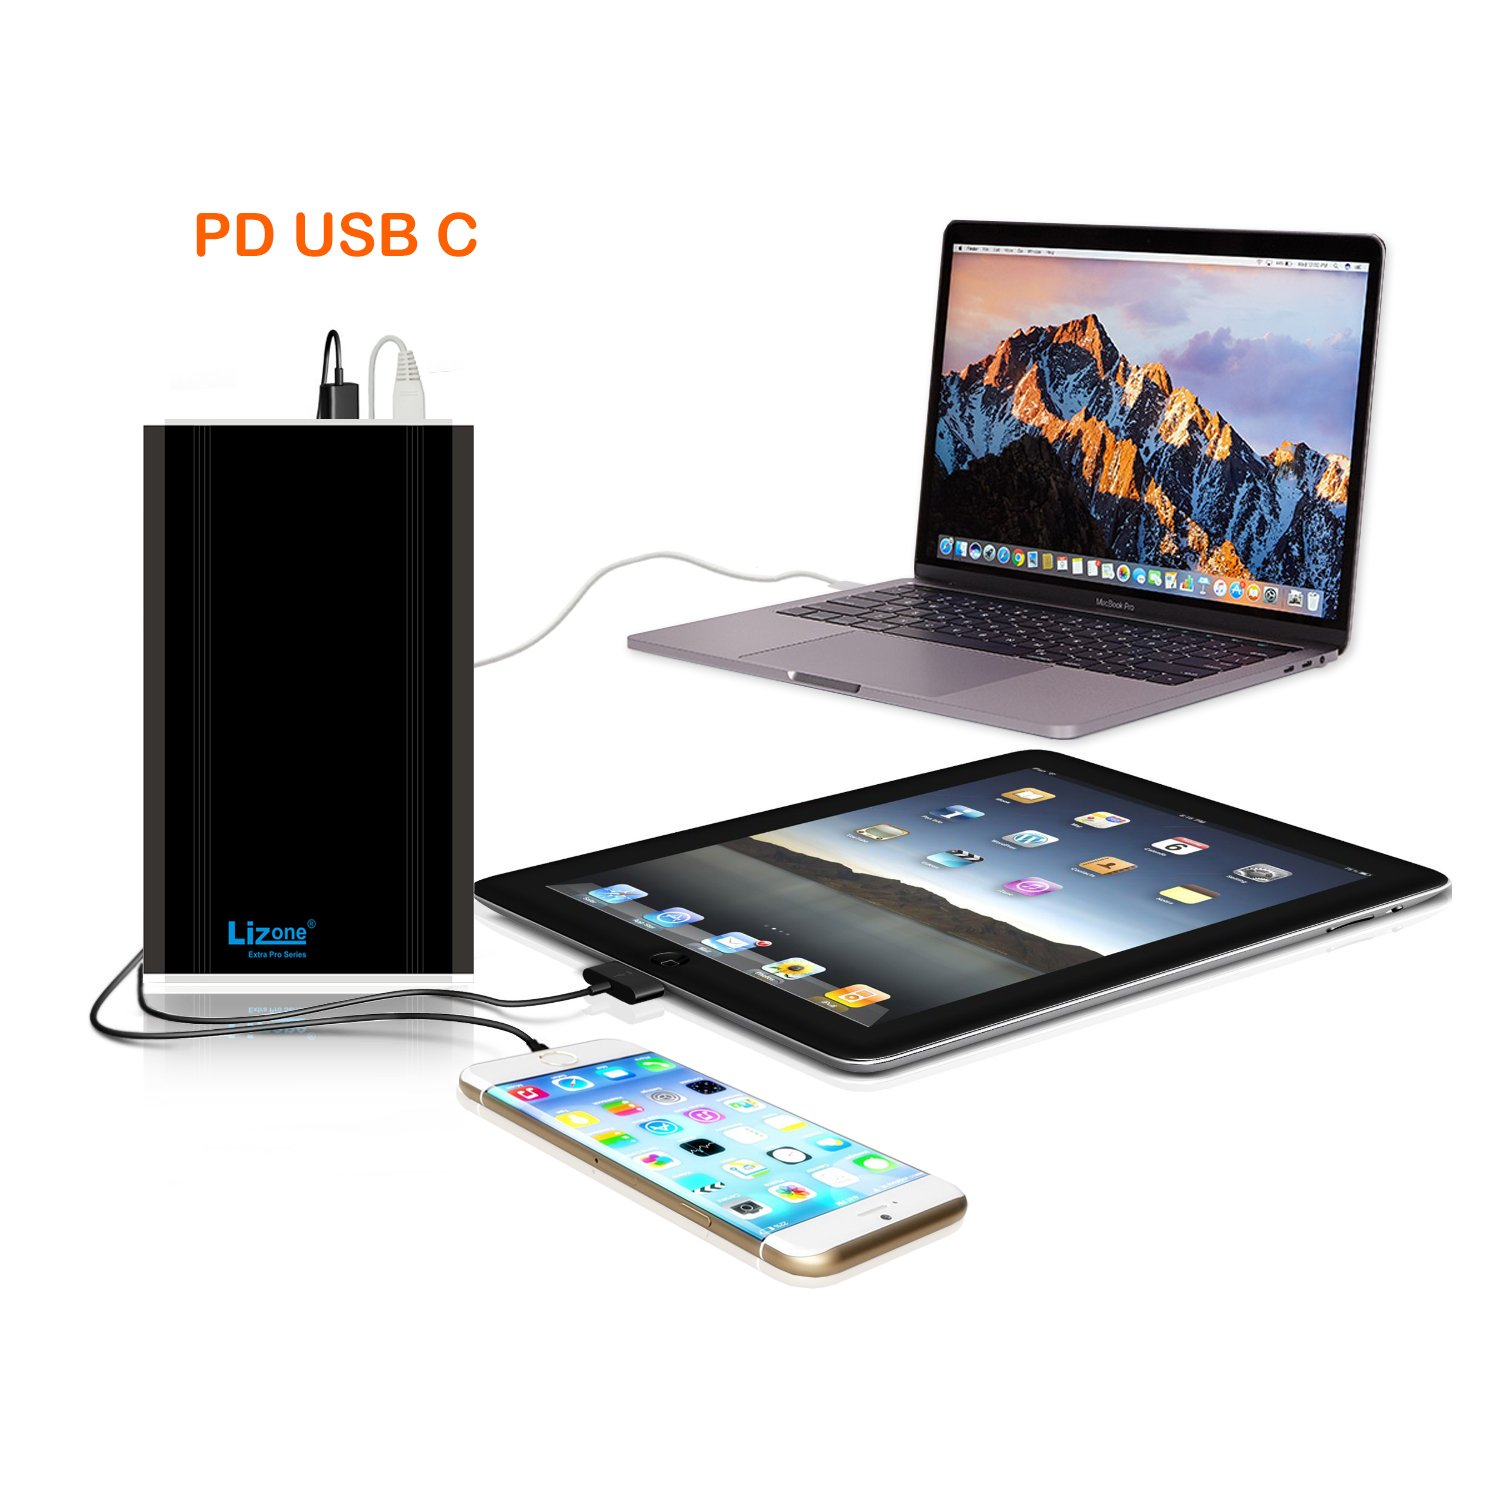 Lizone Extra Pro 50000mAh PD USB C External Battery Power Bank Portable Charger for 2016 2017 Macbook Pro HP Spectre Lenovo Yoga Asus LG Dell Razer Blade Stealth Acer PD USB-C Laptop Tablet Smartphone by Lizone